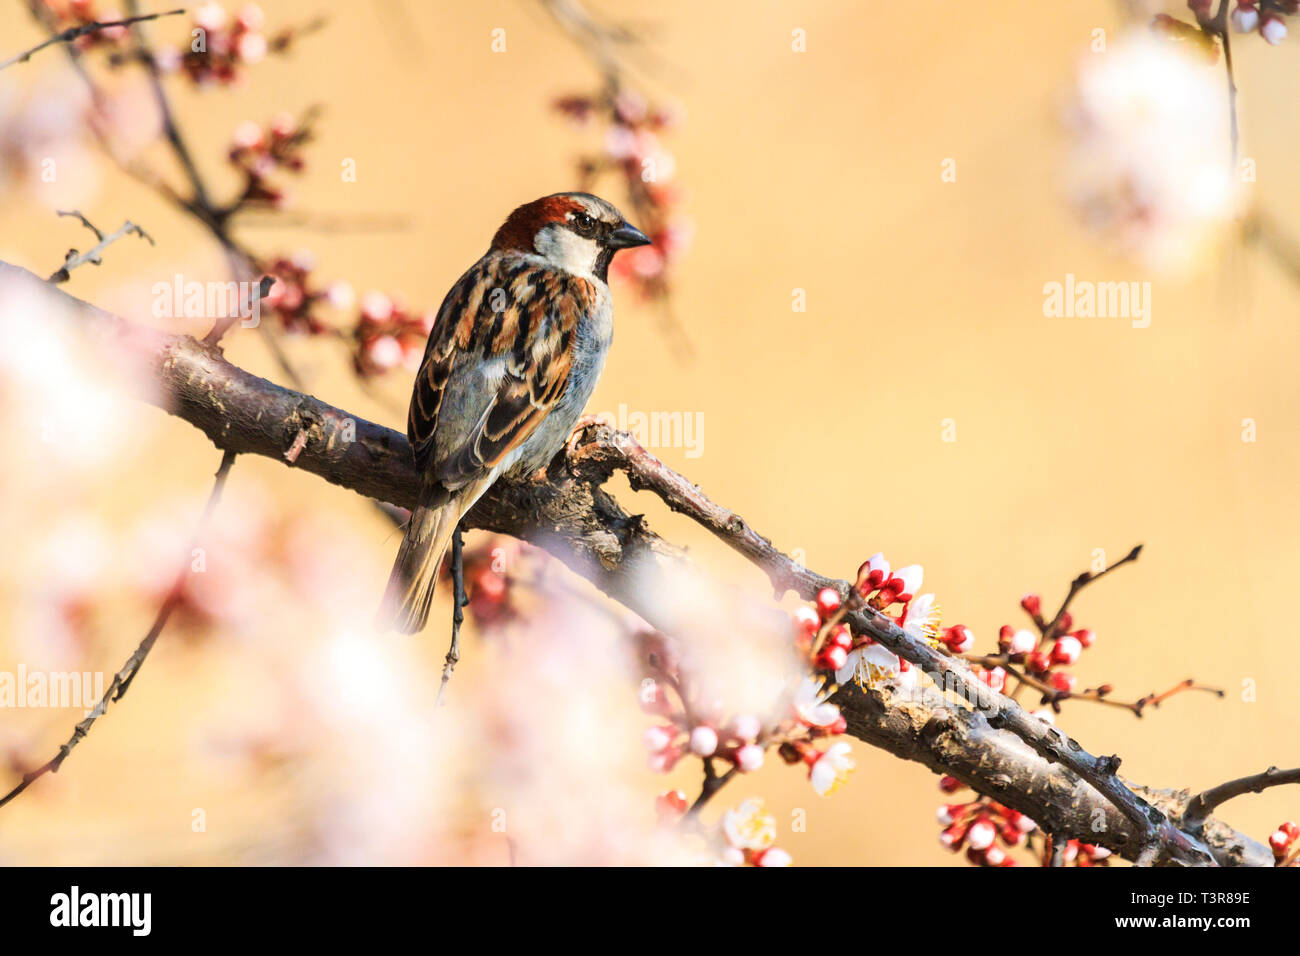 Beautiful Sparrow Sits On A Branch Among The Blossoming Apricot Stock Photo Alamy